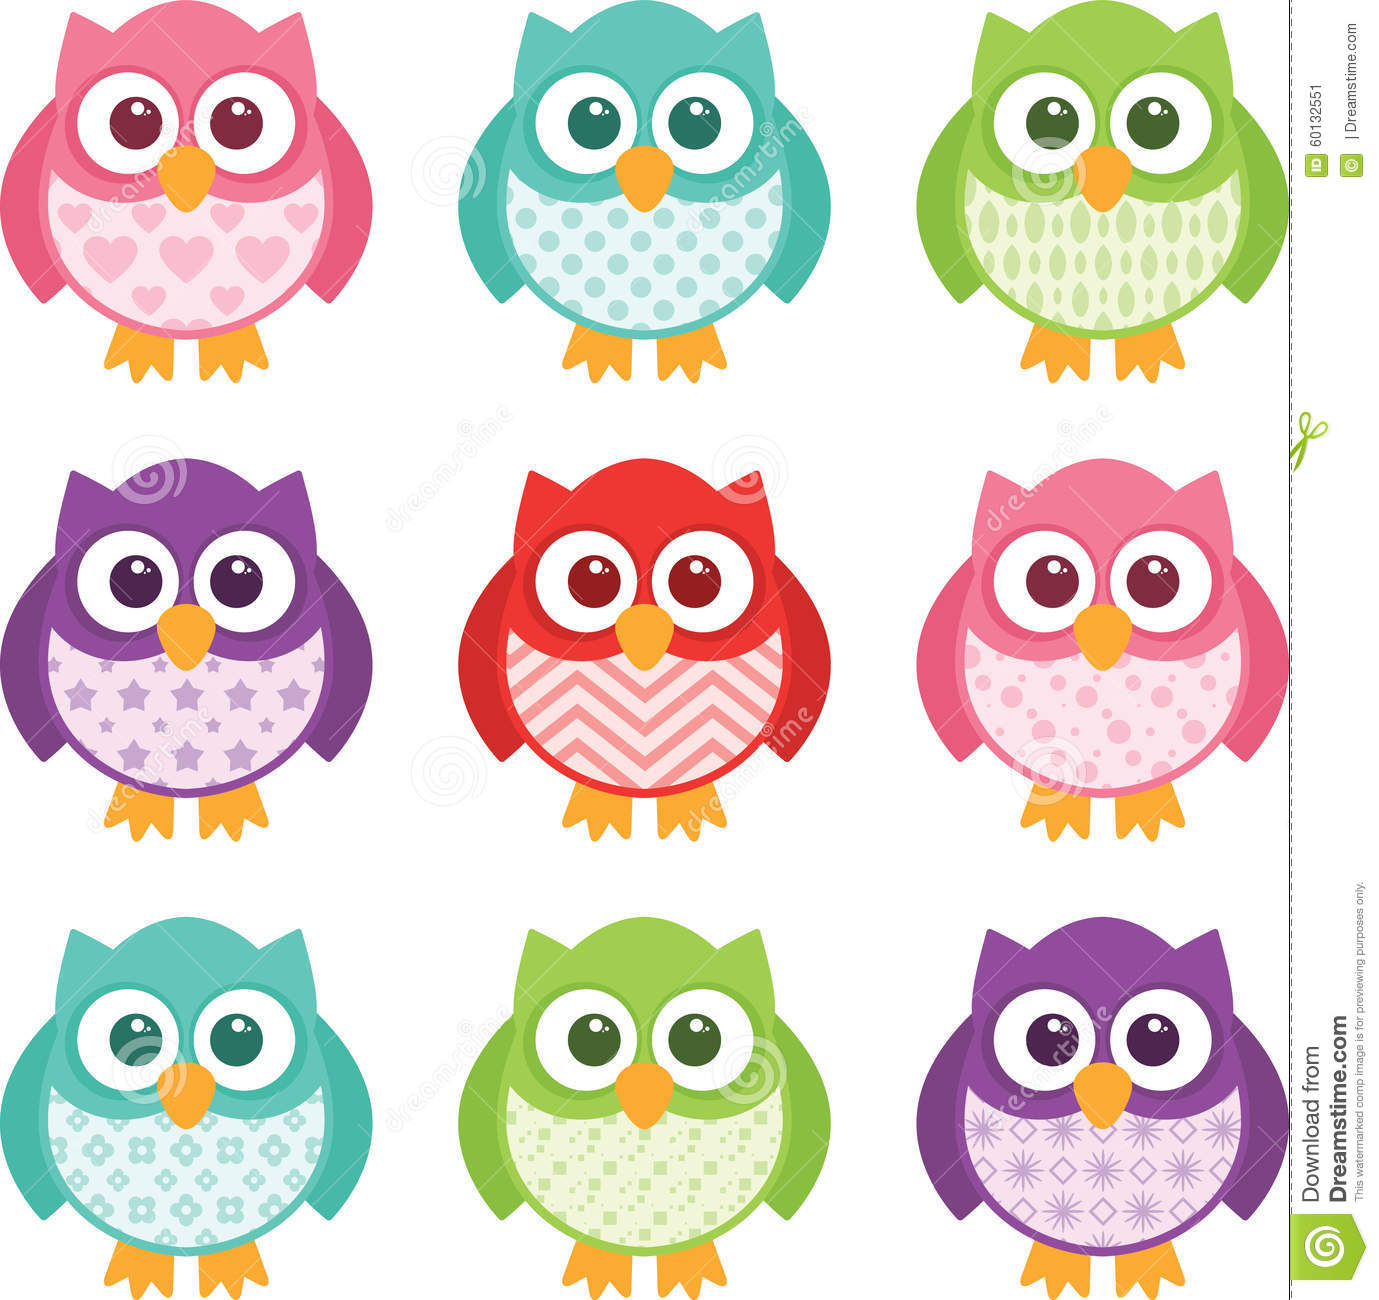 Wallpapers Fofo Cutes Cute Simple Cartoon Patterned Owls Stock Vector Image